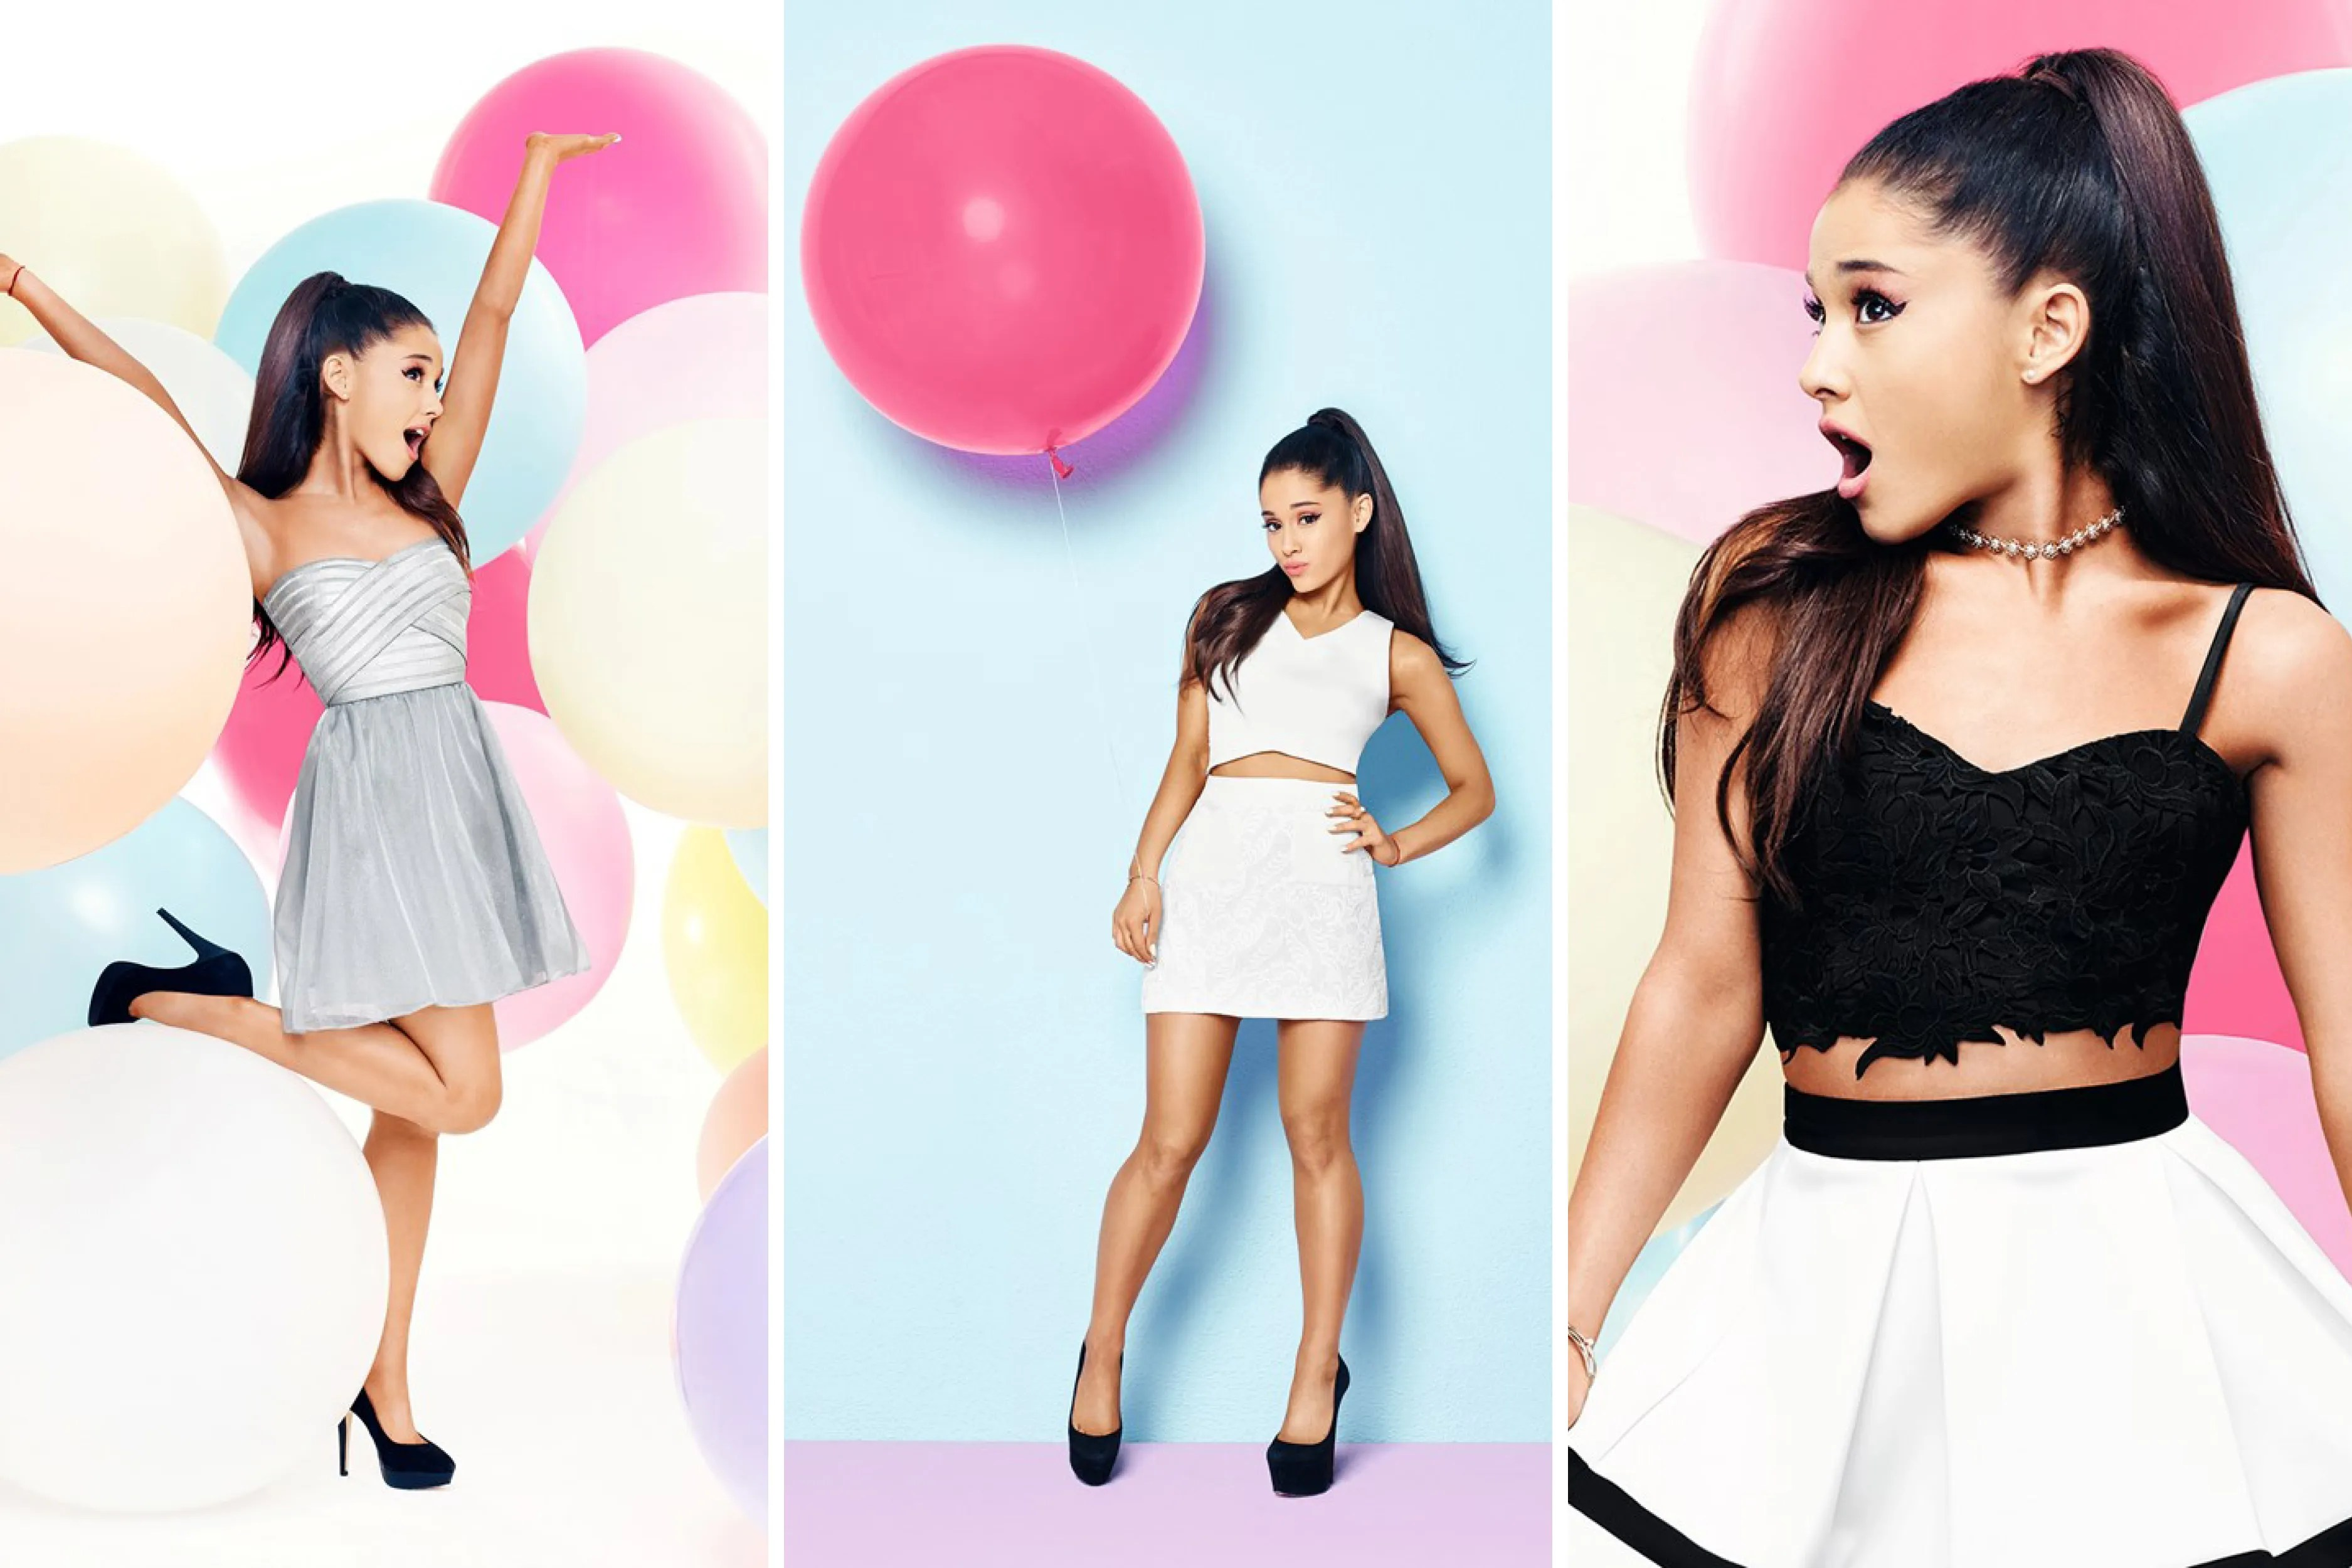 Ariana Grande En Traje De Baño Ariana Grande 39s Fashion Line Is Officially Here Cat Ears